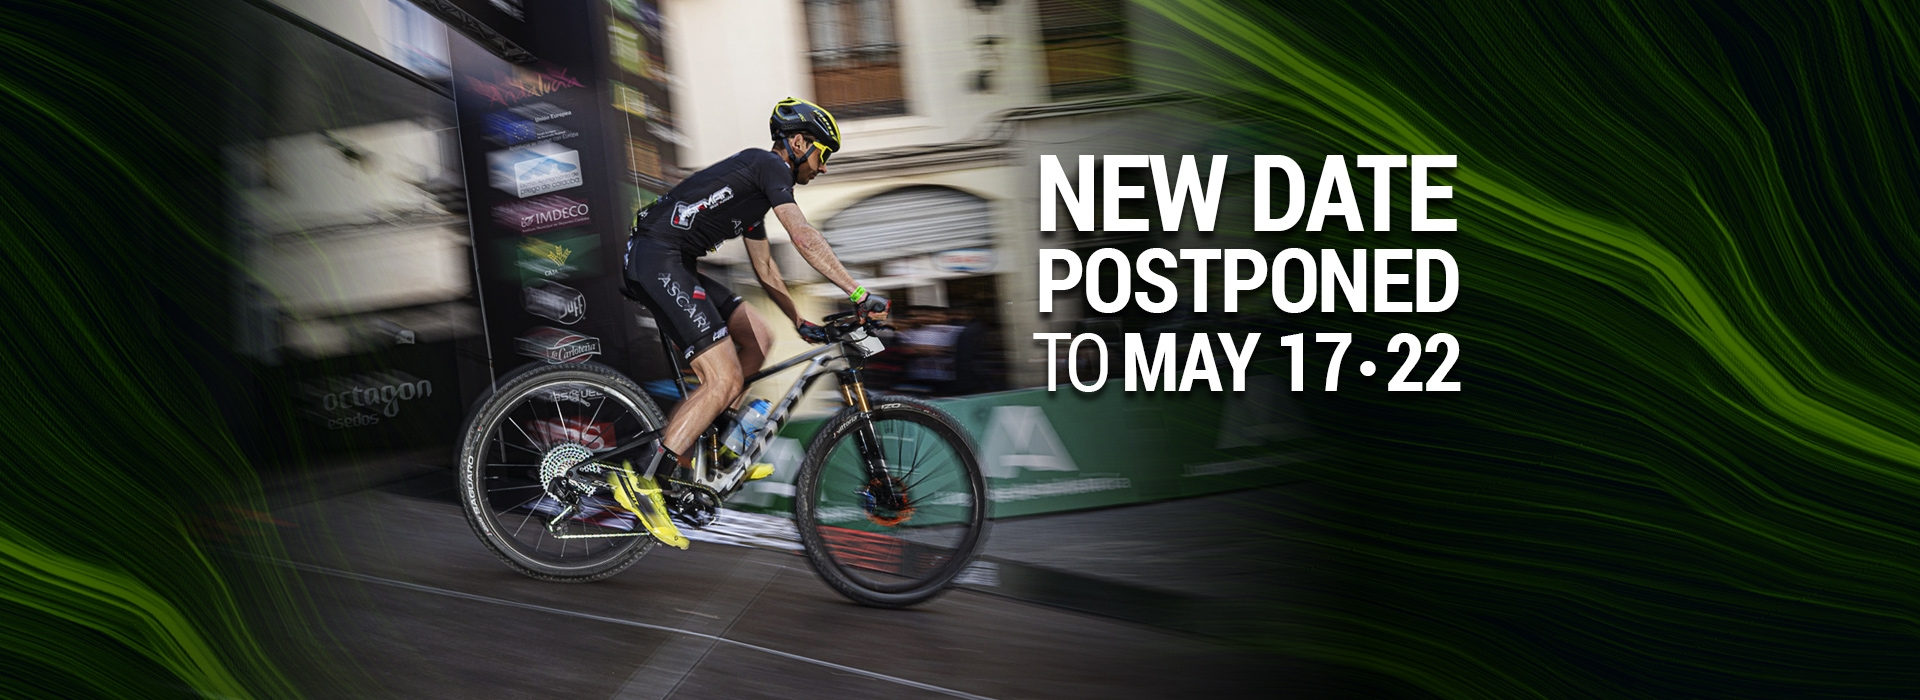 Andalucía Bike Race by Garmin postponed to May